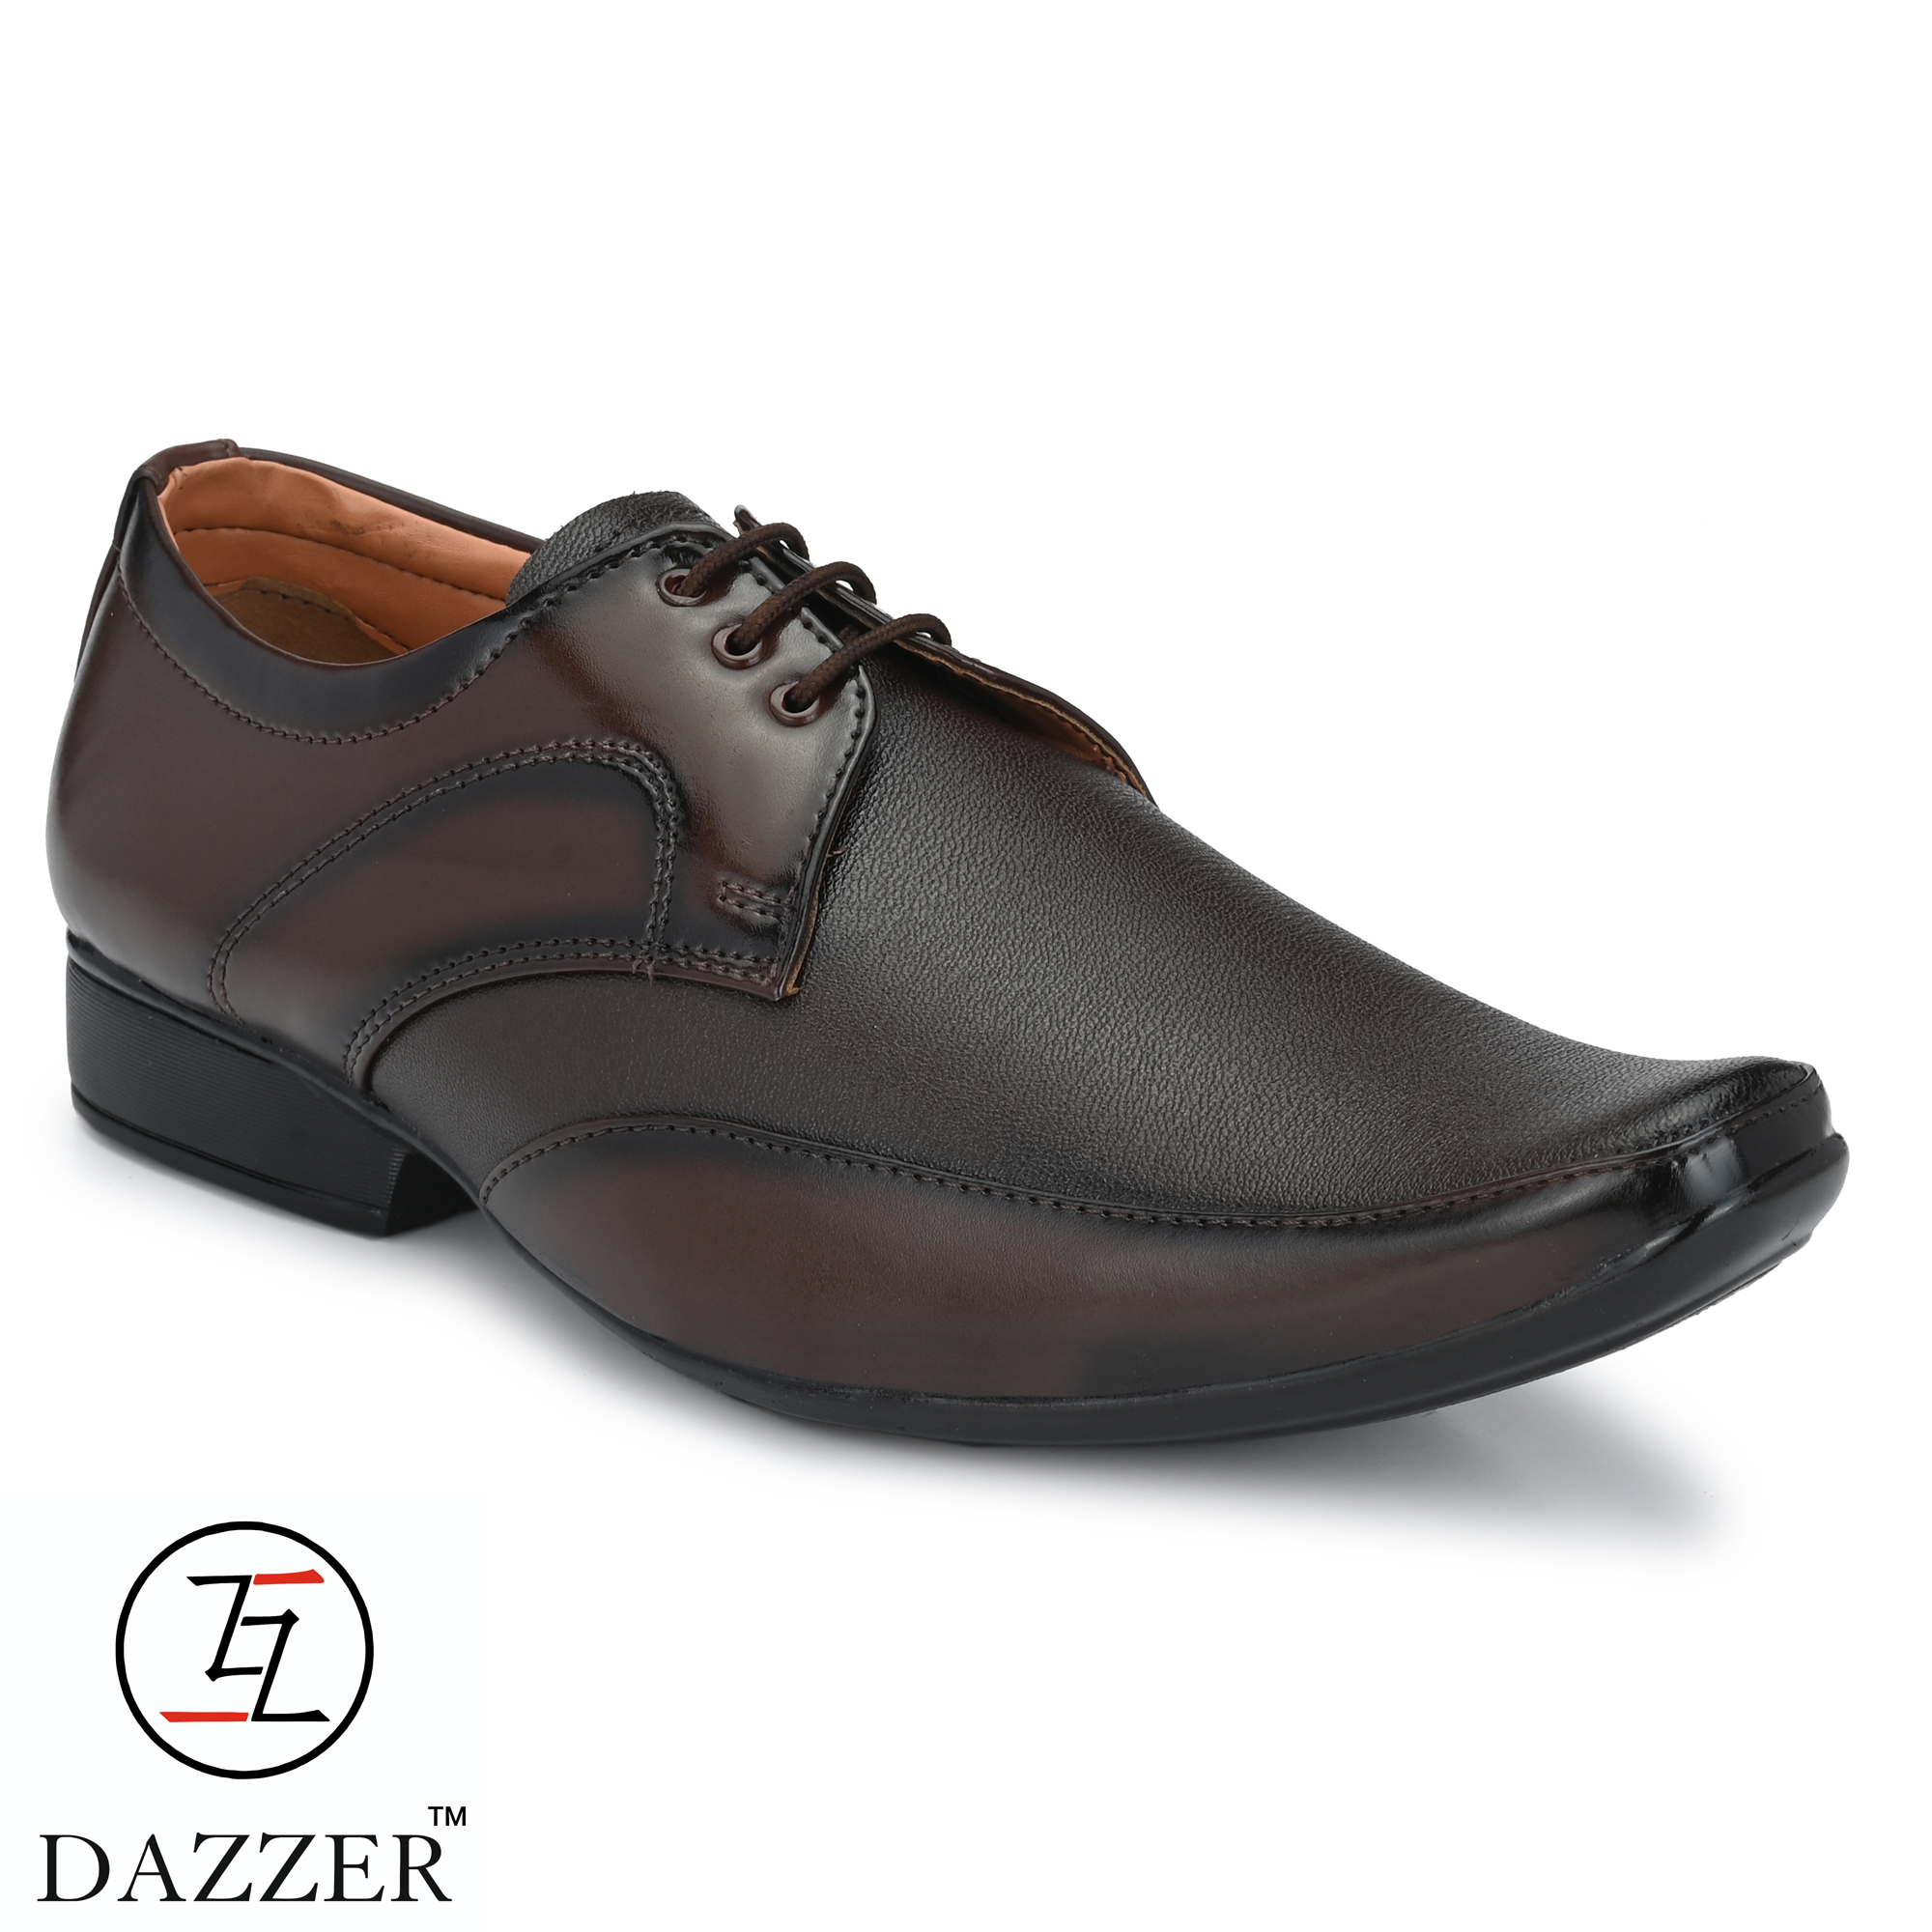 Dazzer 610 Lace Up Synthetic Formal Shoes For Men 610Brown. (Brown, 6-10, 8 PAIR)